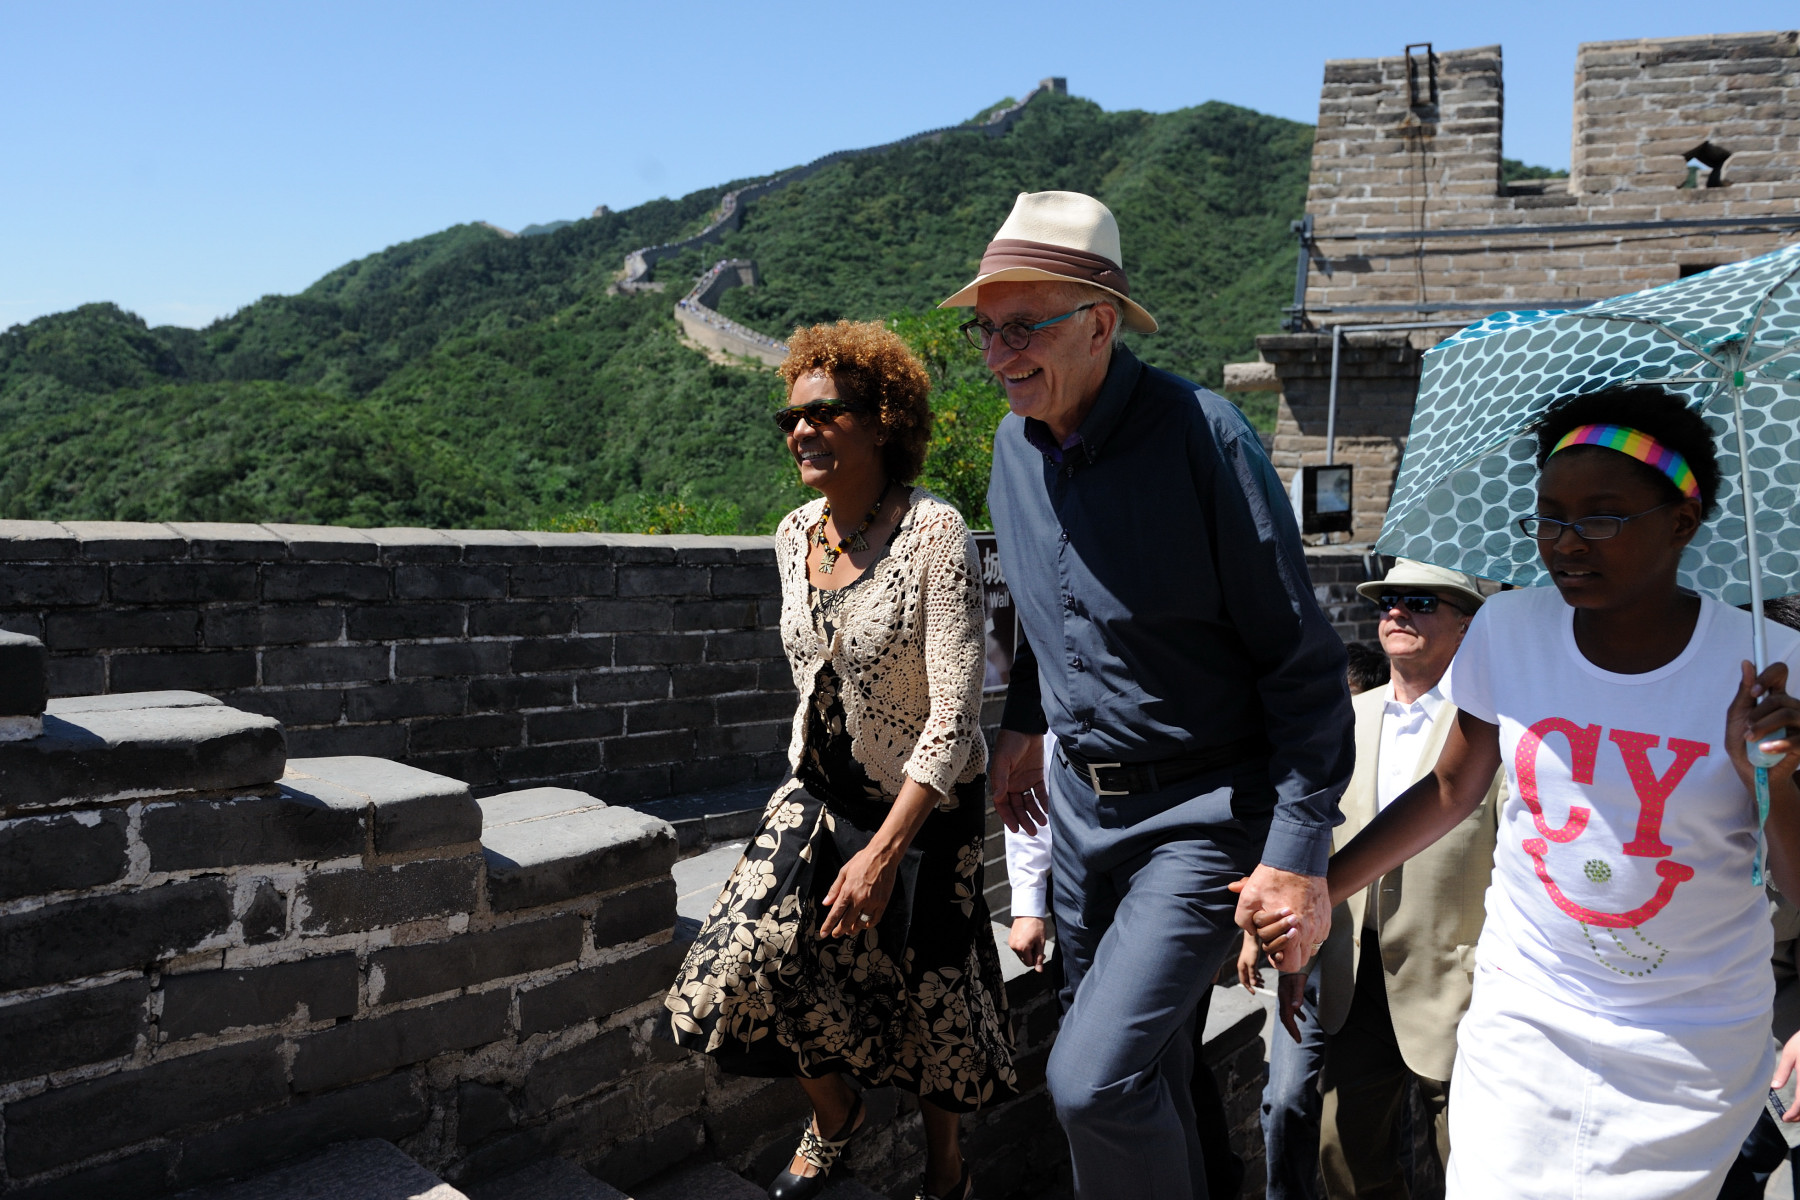 The Great Wall is one of the New Seven Wonders of the World. The Governor General, Mr. Lafond and Marie-Éden walked together on that wonder.